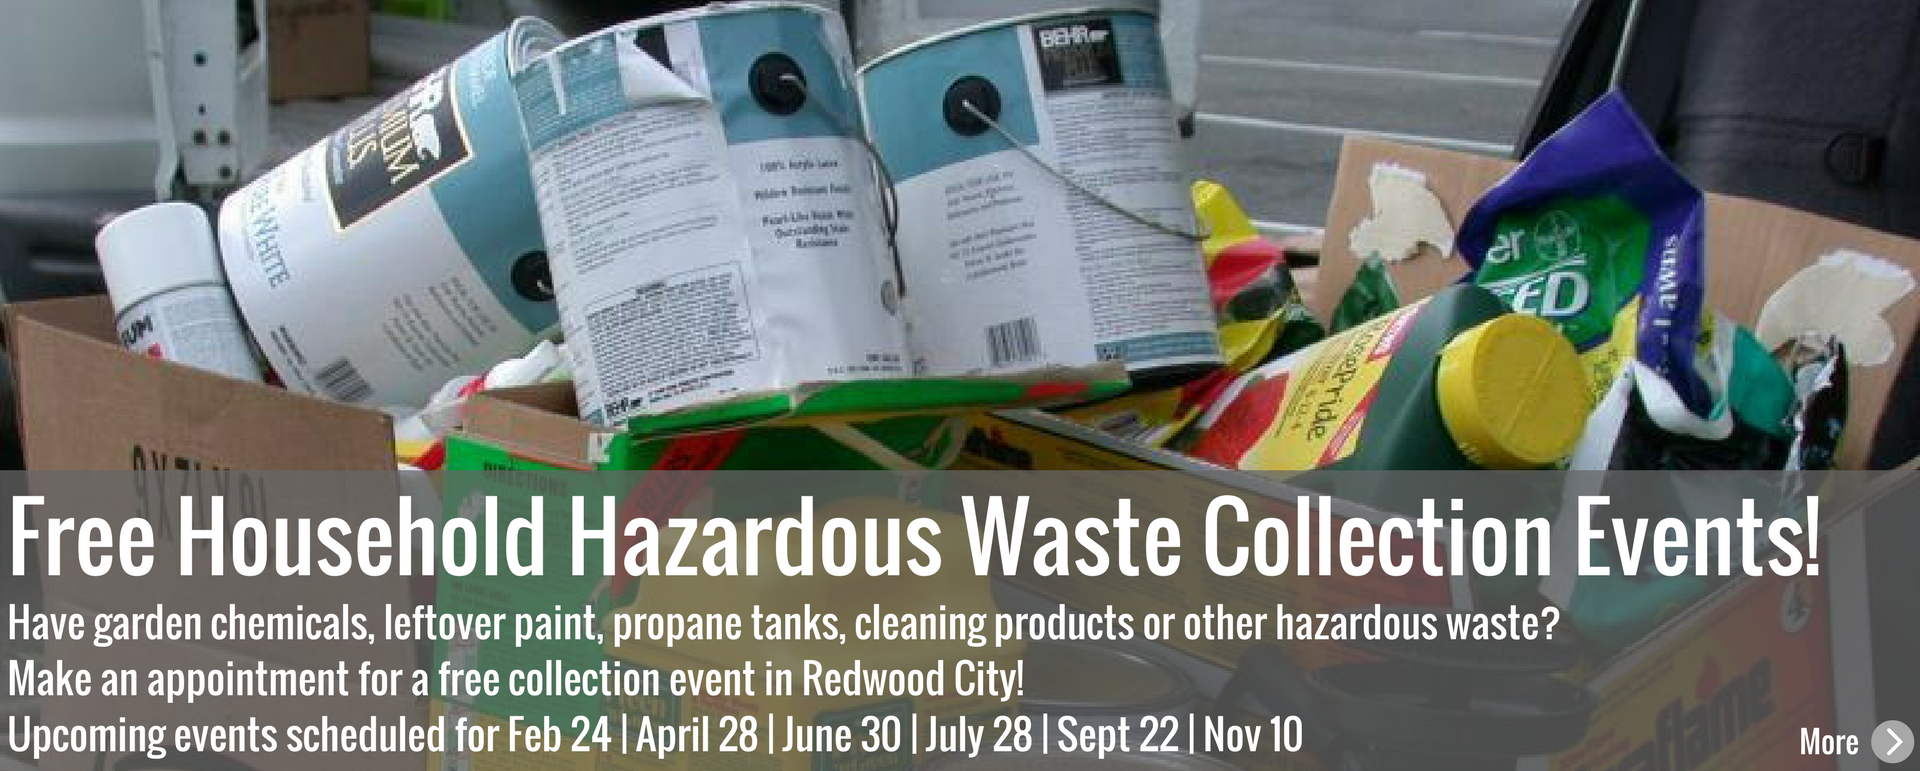 Household Hazardous Waste, Disposal Event, Household Waste, Chemicals, Paint, Propane Tank, Motor Oil, Nail Polish, Lights